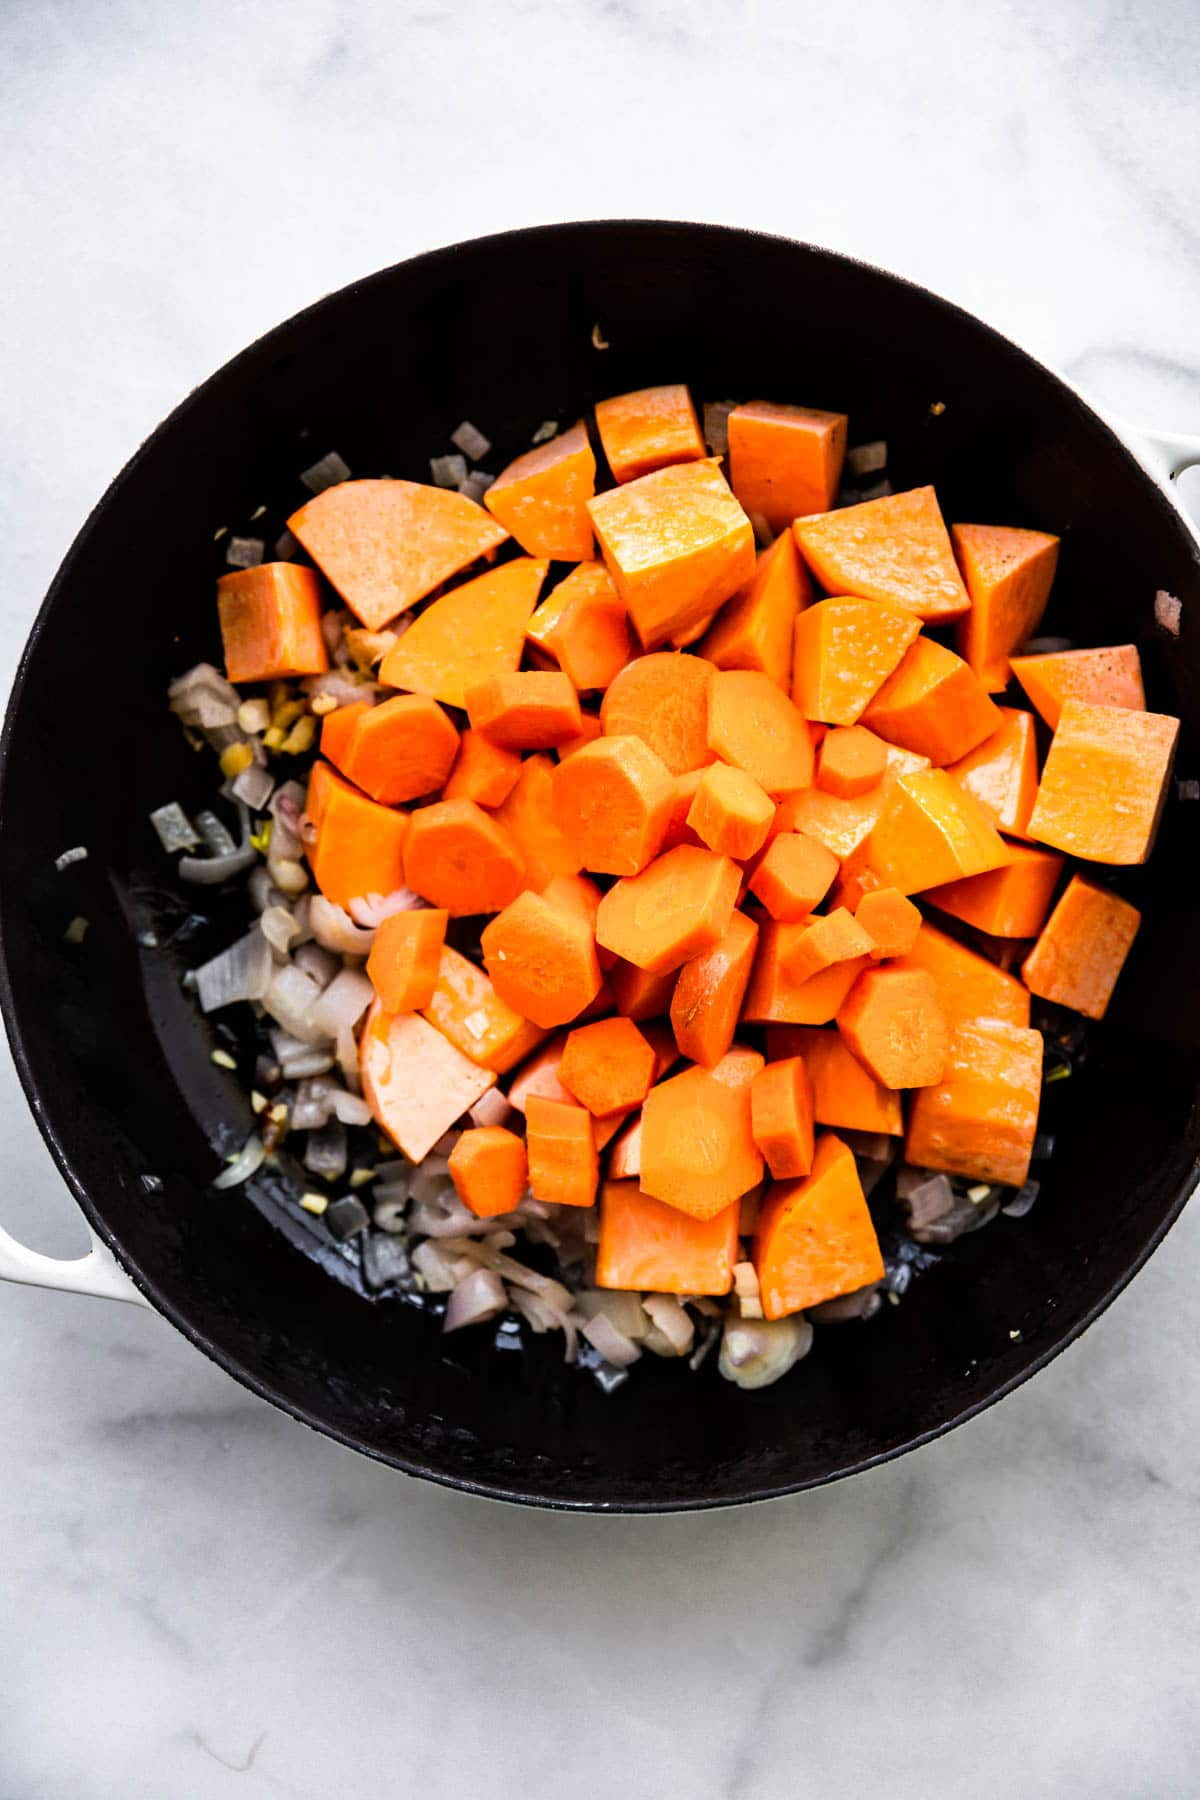 overhead photo: chopped carrots and sweet potatoes in black pot